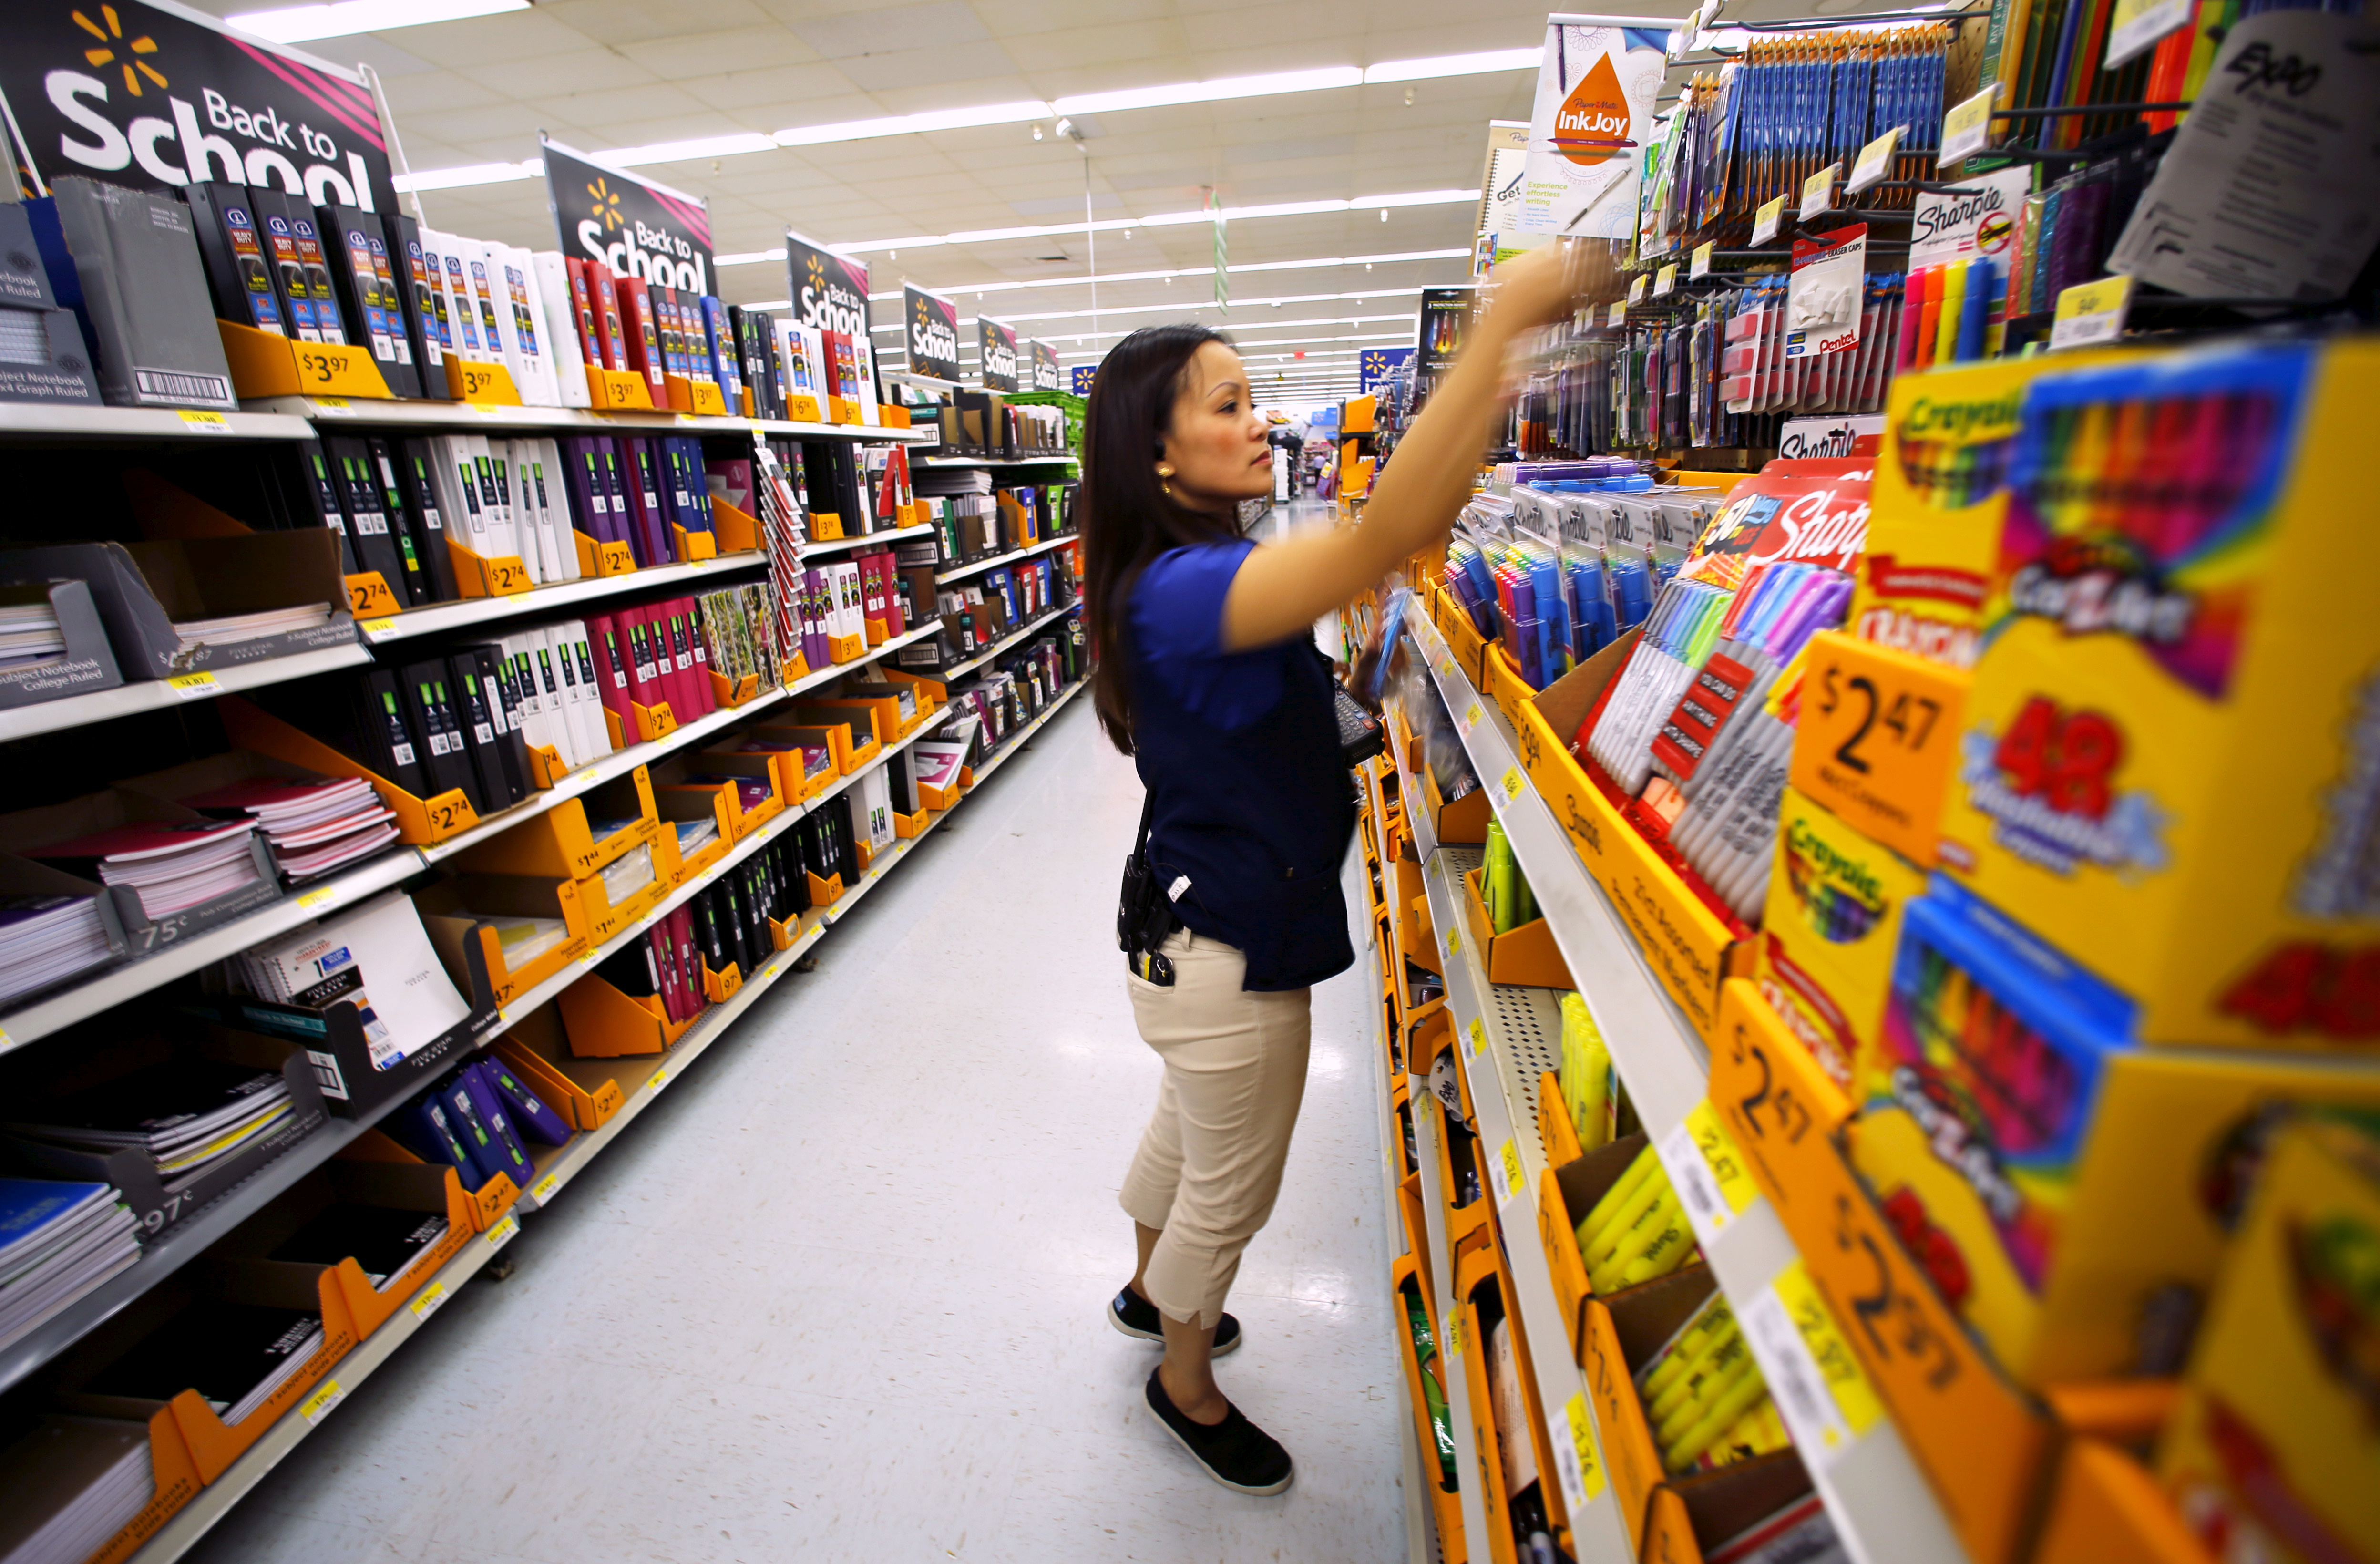 Walmart department manager Karren Gomes helps stock shelves with school supplies as the retail store prepare for back to school shoppers in San Diego, California, U.S. August 6, 2015. REUTERS/Mike Blake/File Photo